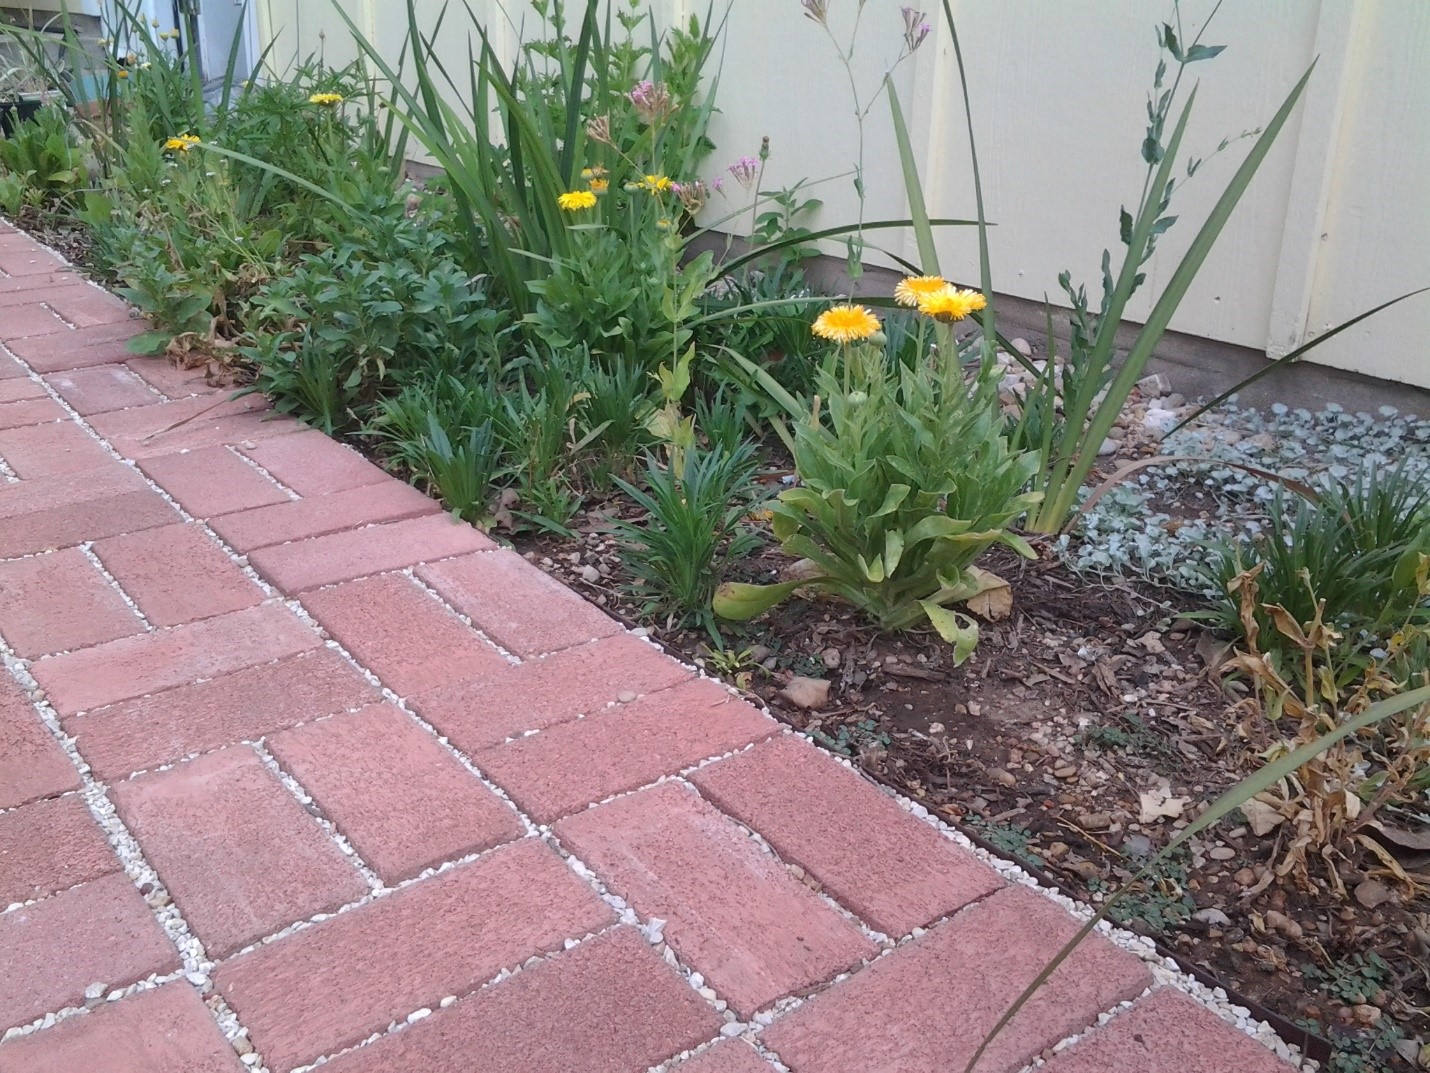 Permeable pavers installed at a residence.